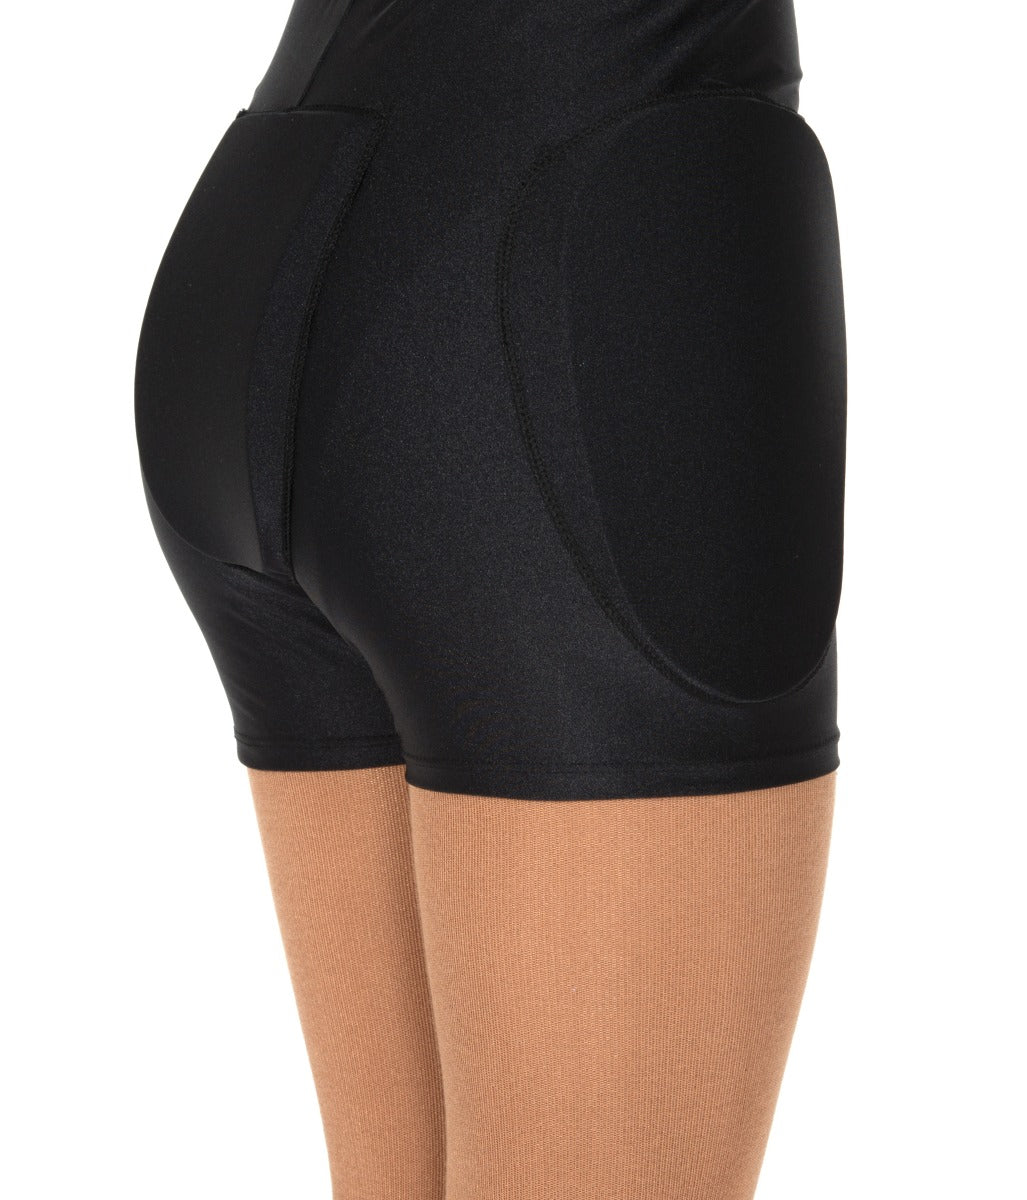 Jerry's Protective Padded Shorts in Black - Big Kids/Adults